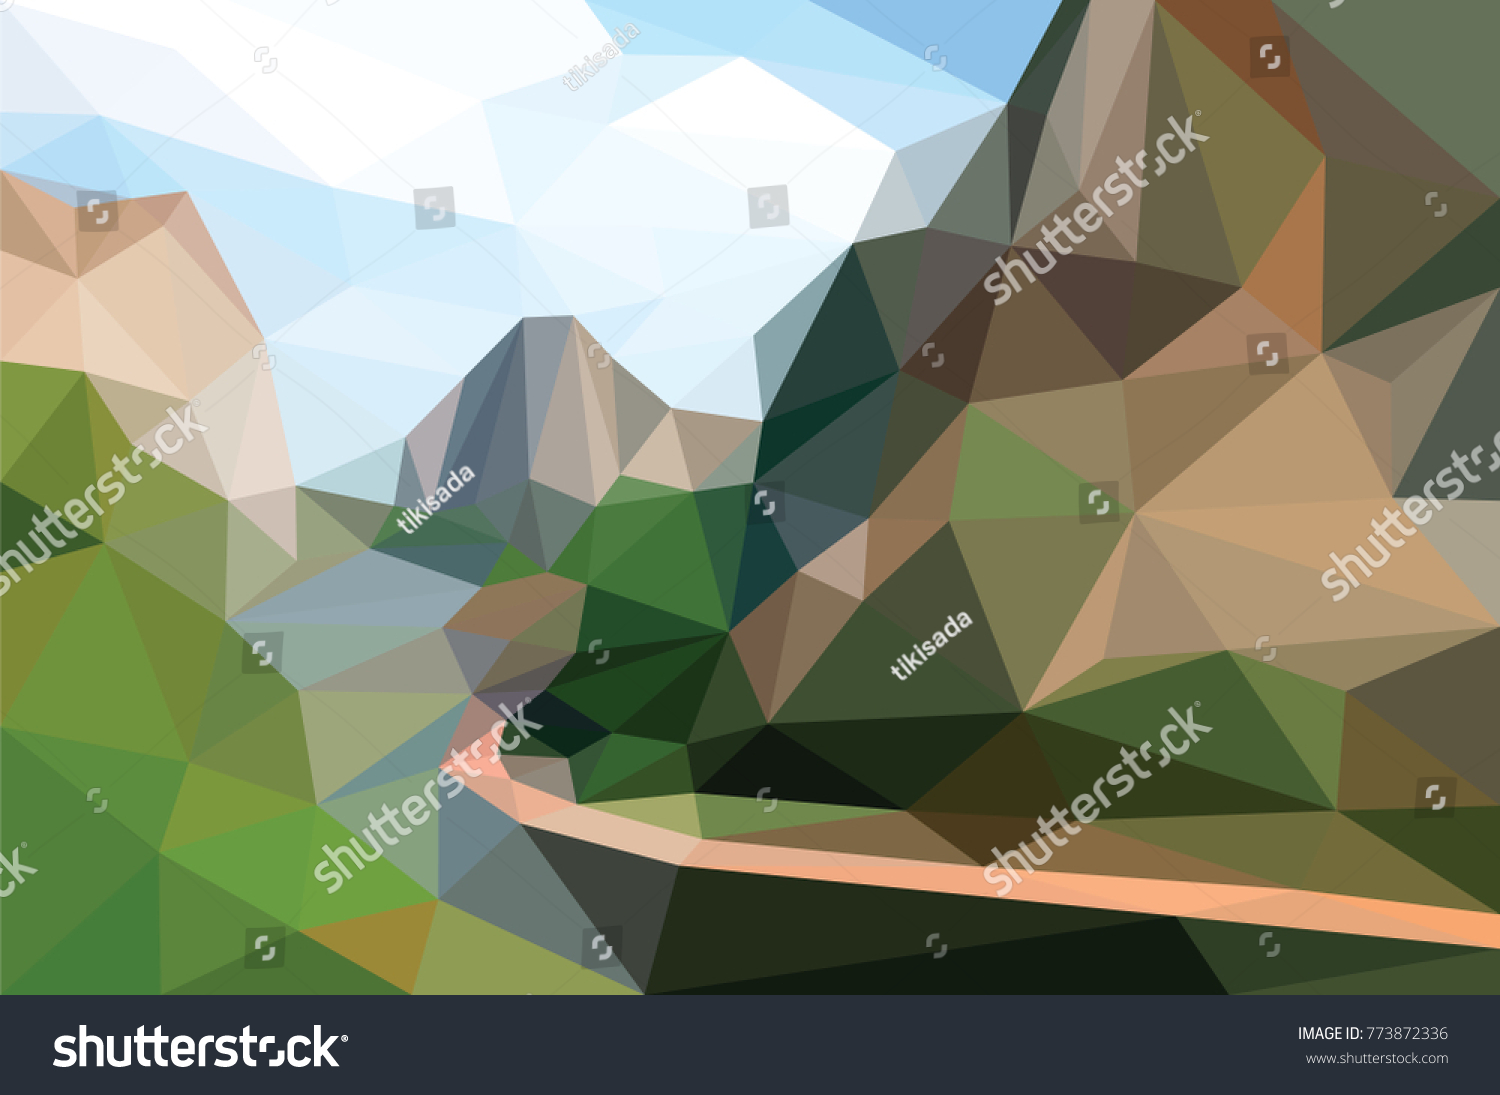 Must see Wallpaper Mountain Polygon - stock-vector-hill-lake-mountain-low-polygon-background-forest-tree-vector-wallpaper-colorful-geometric-pattern-773872336  Pic_877796.jpg